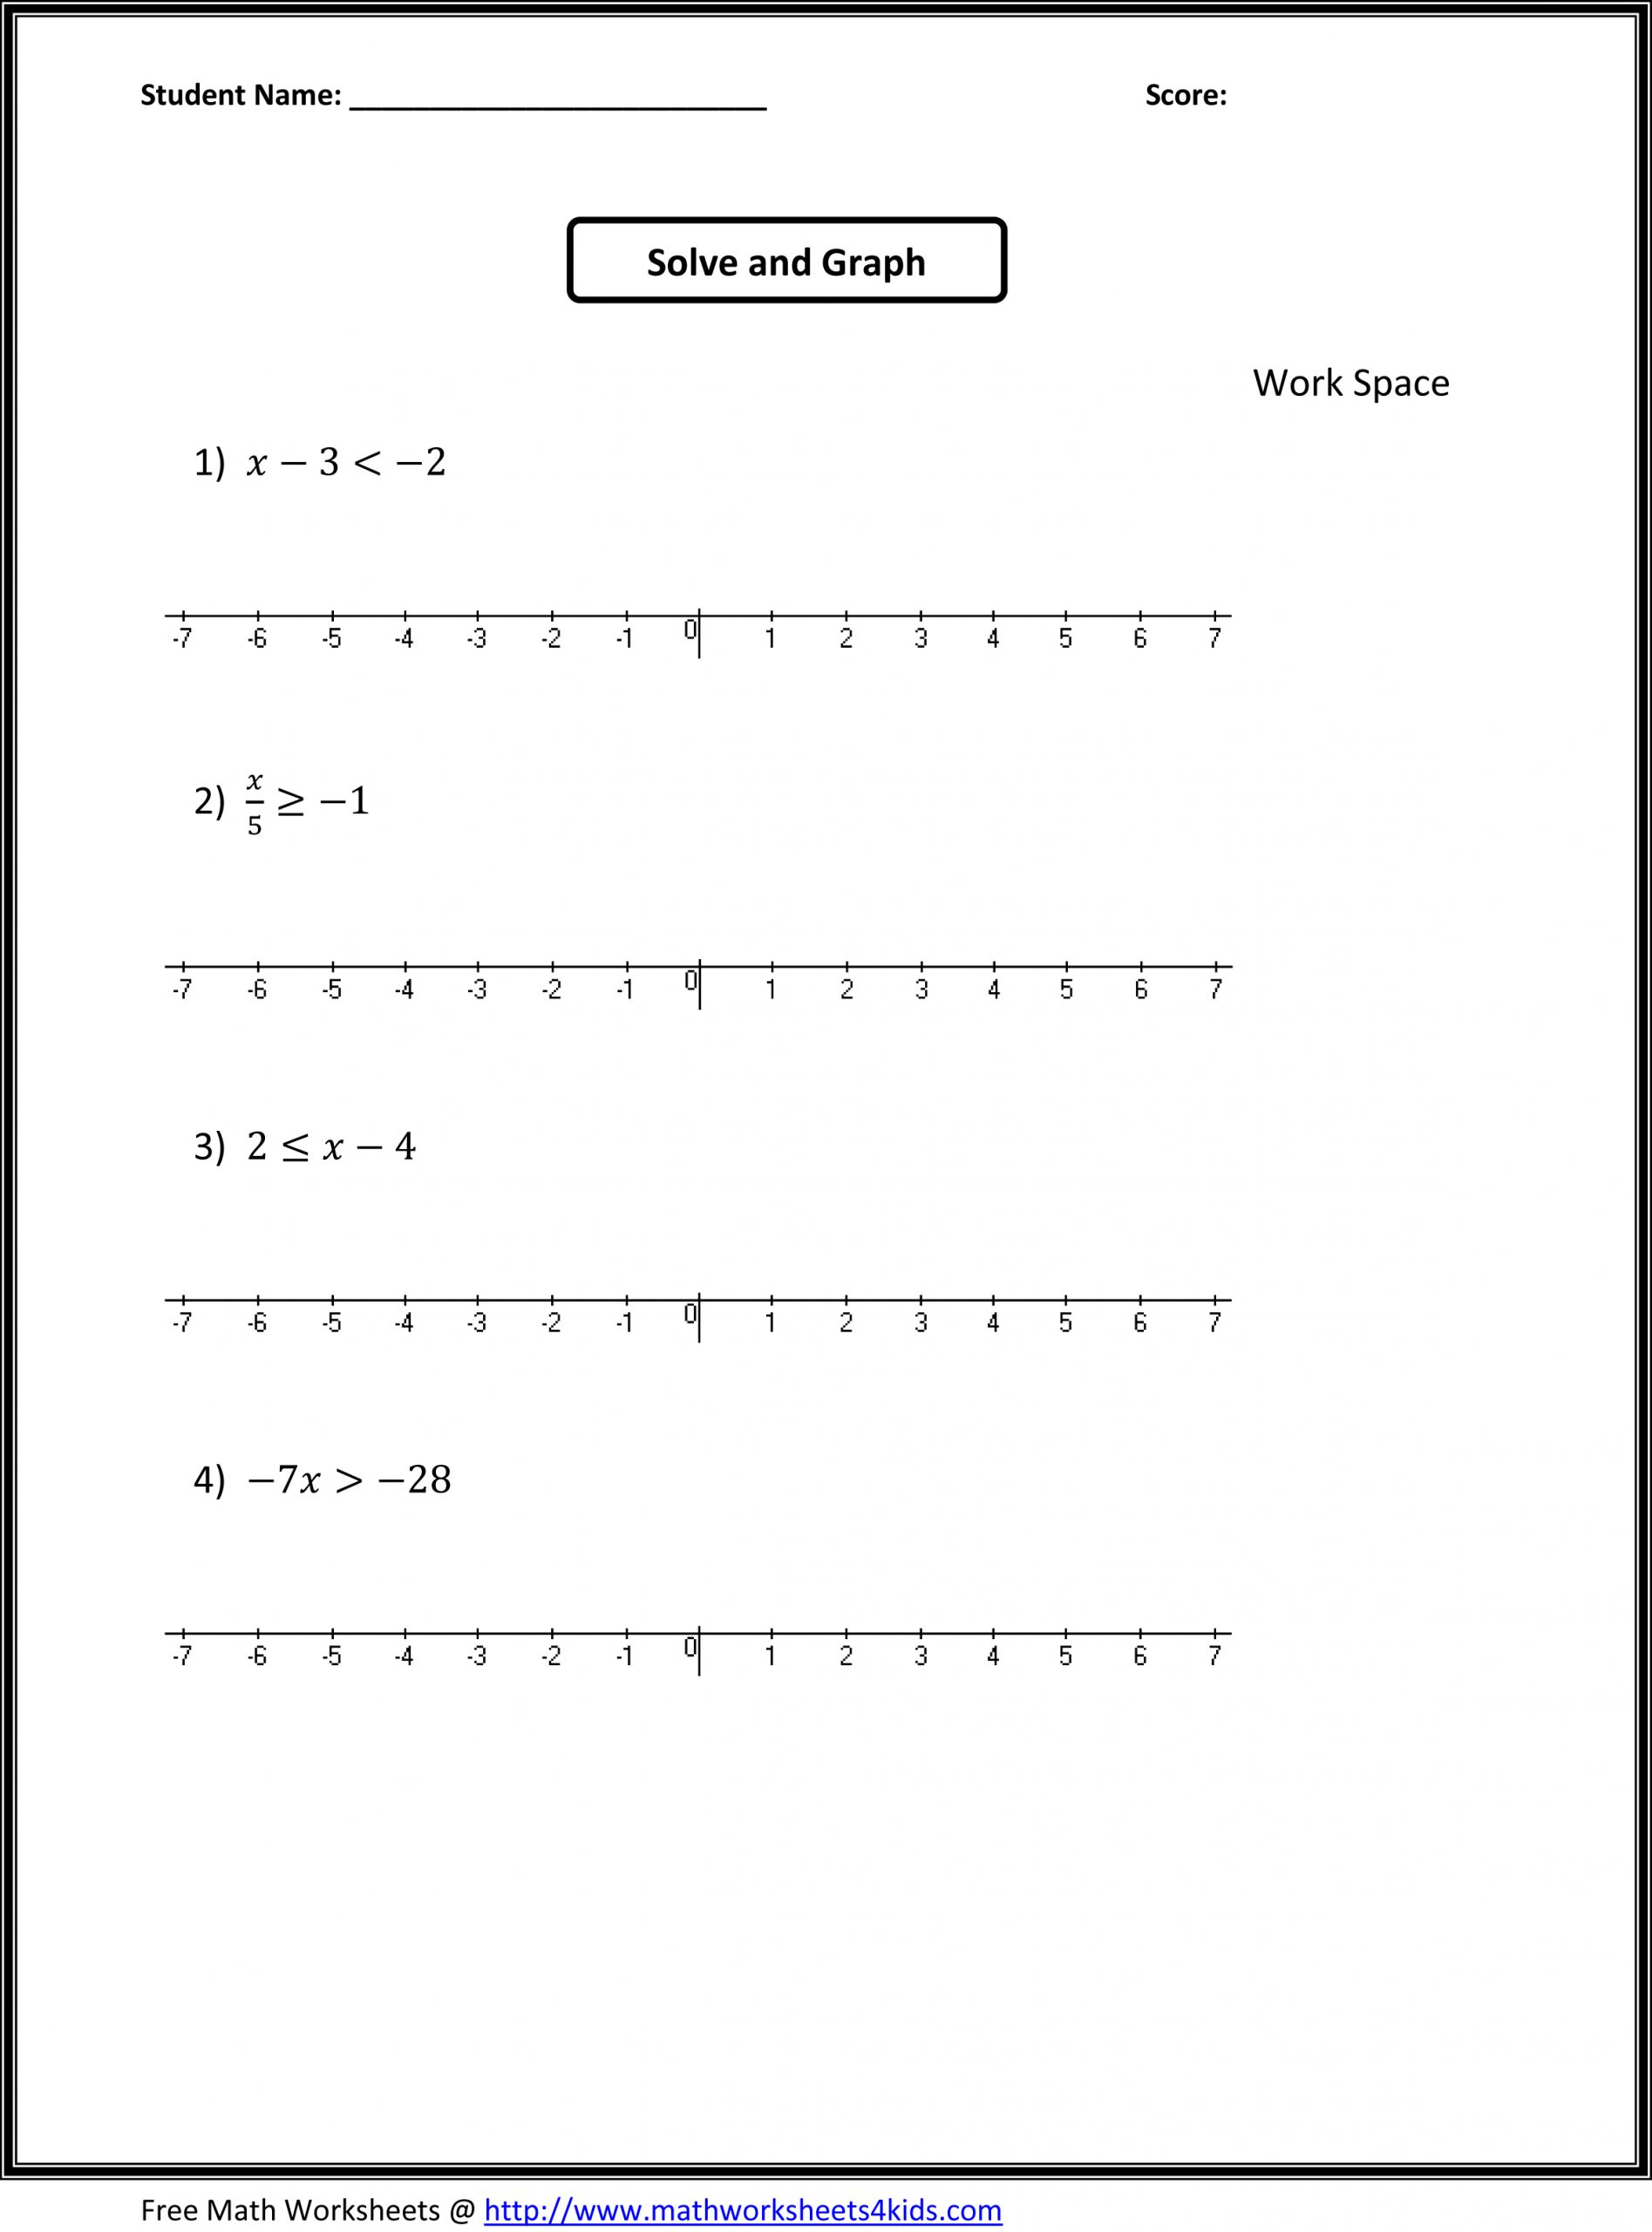 56 Awesome 7Th Grade Math Worksheets Picture Inspirations